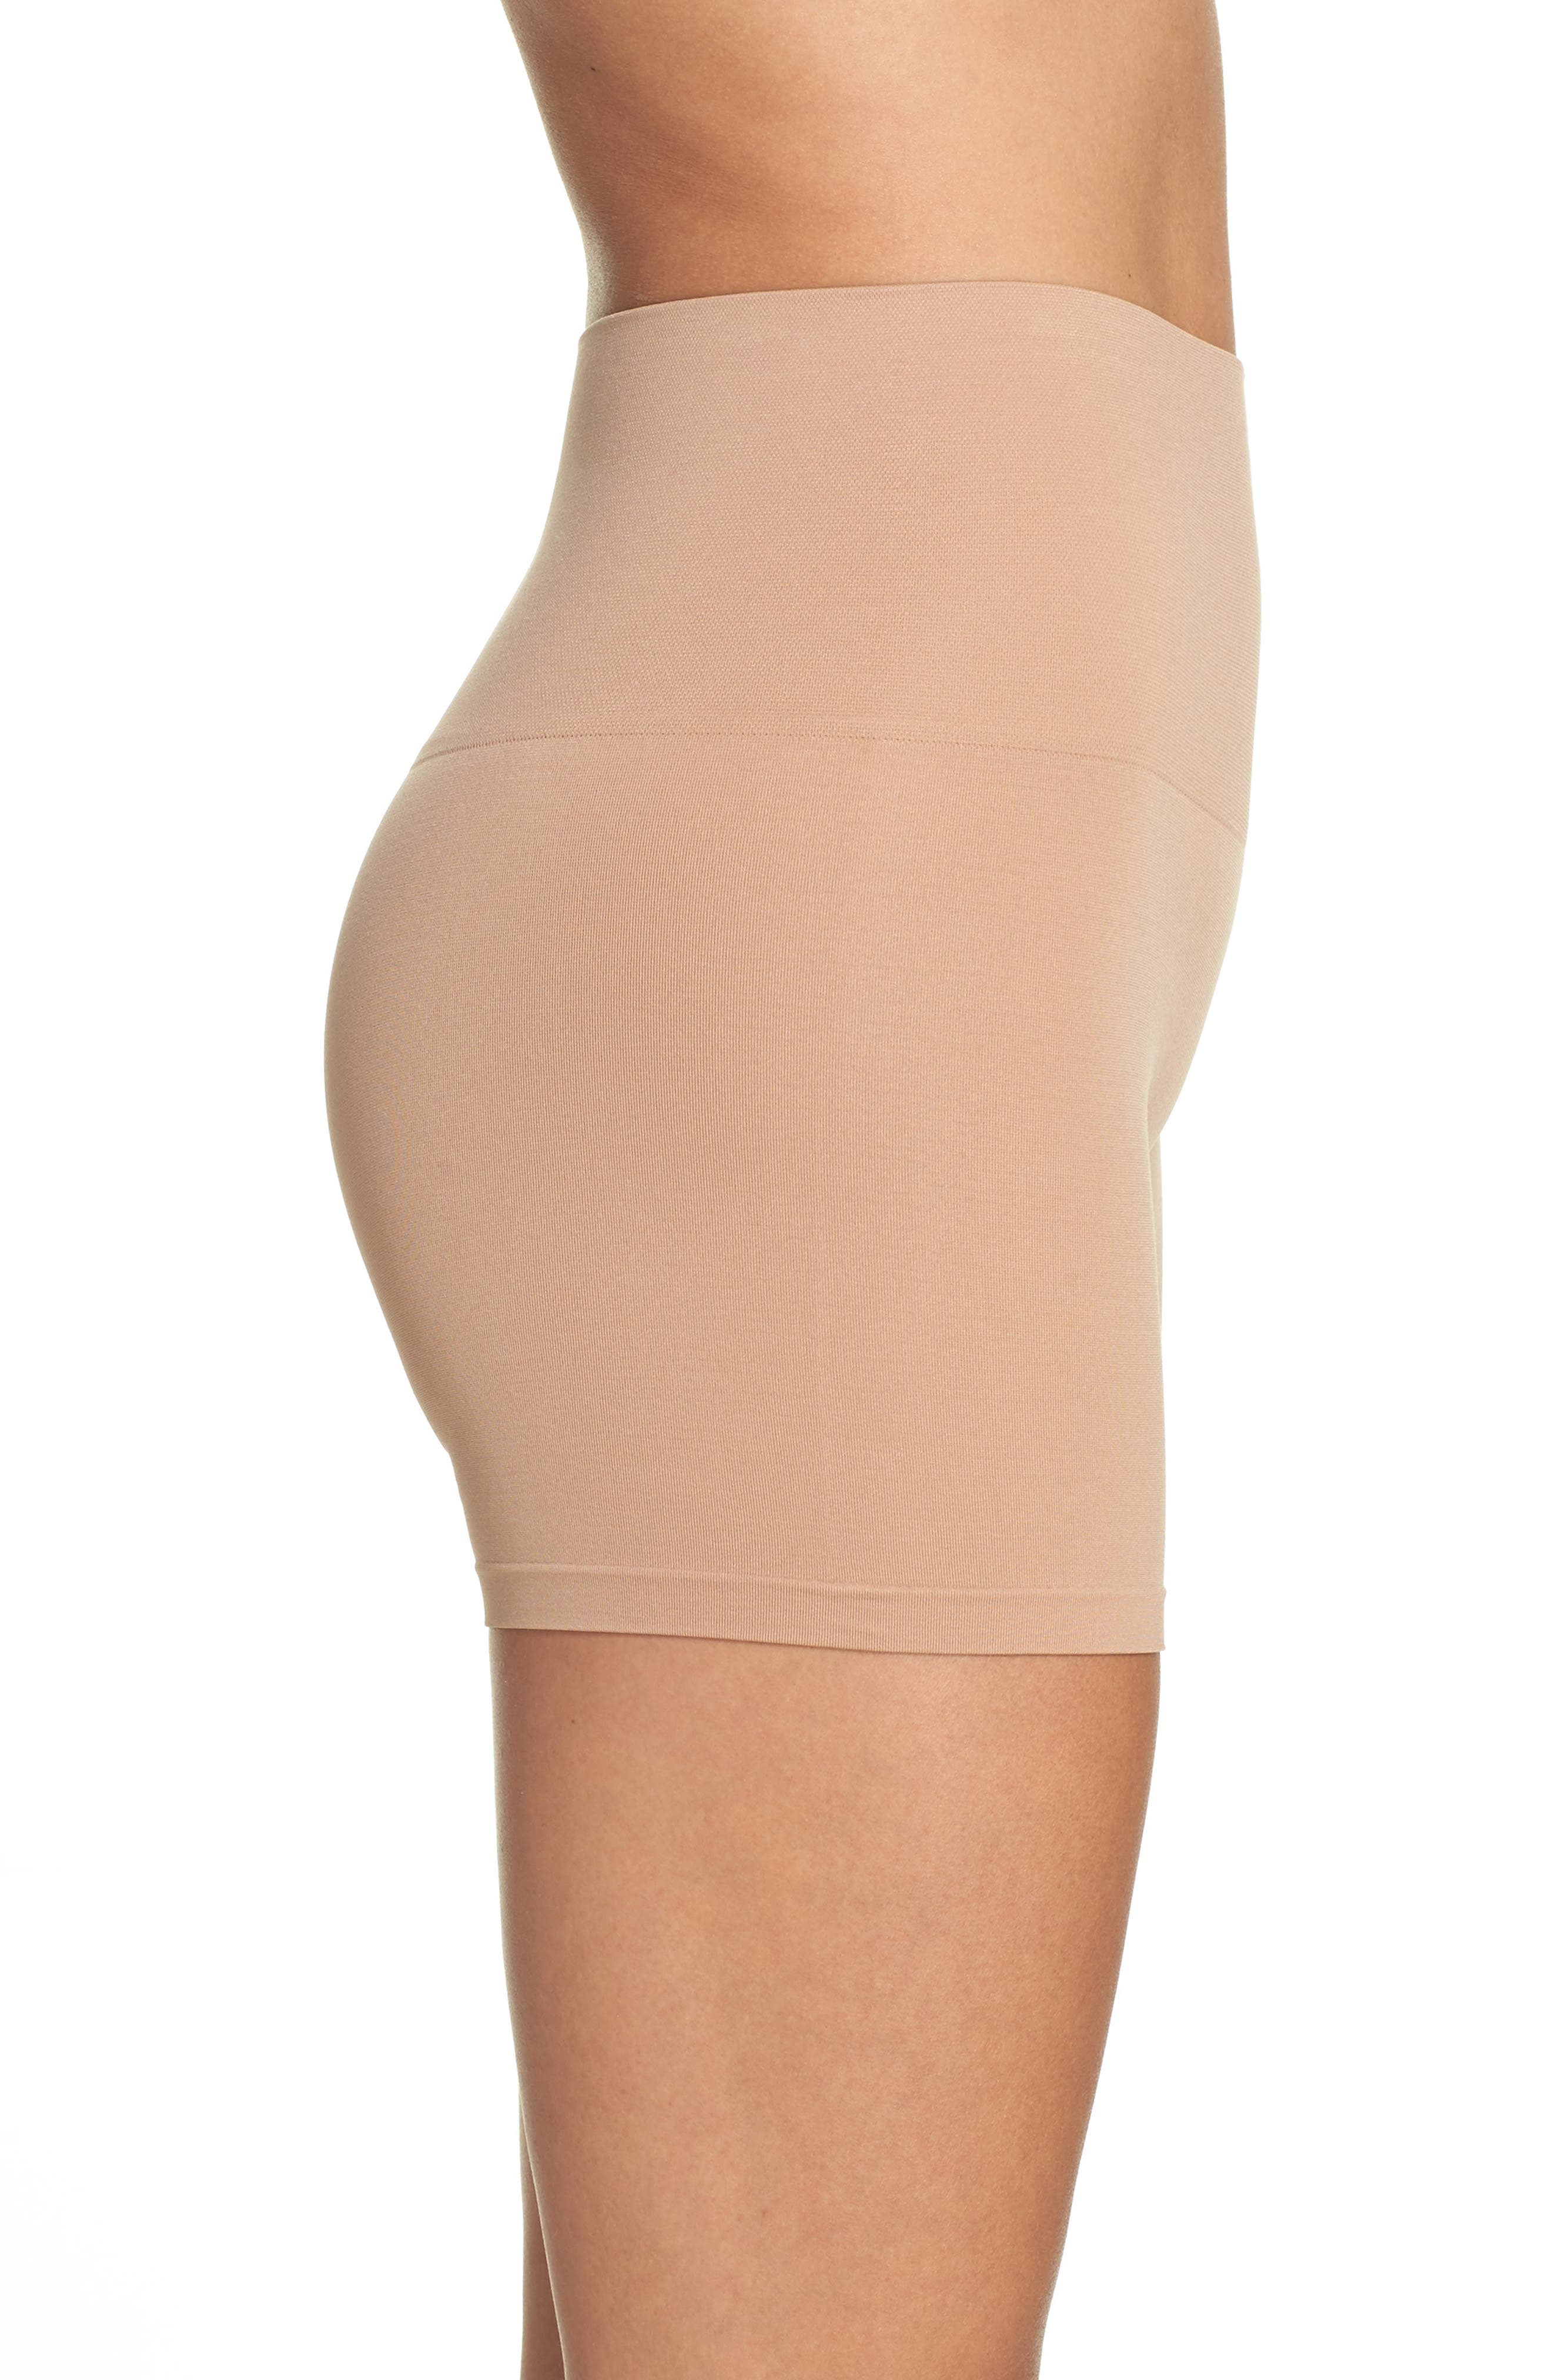 Ultralight Seamless Shaping Shorts,                             Alternate thumbnail 3, color,                             Almond